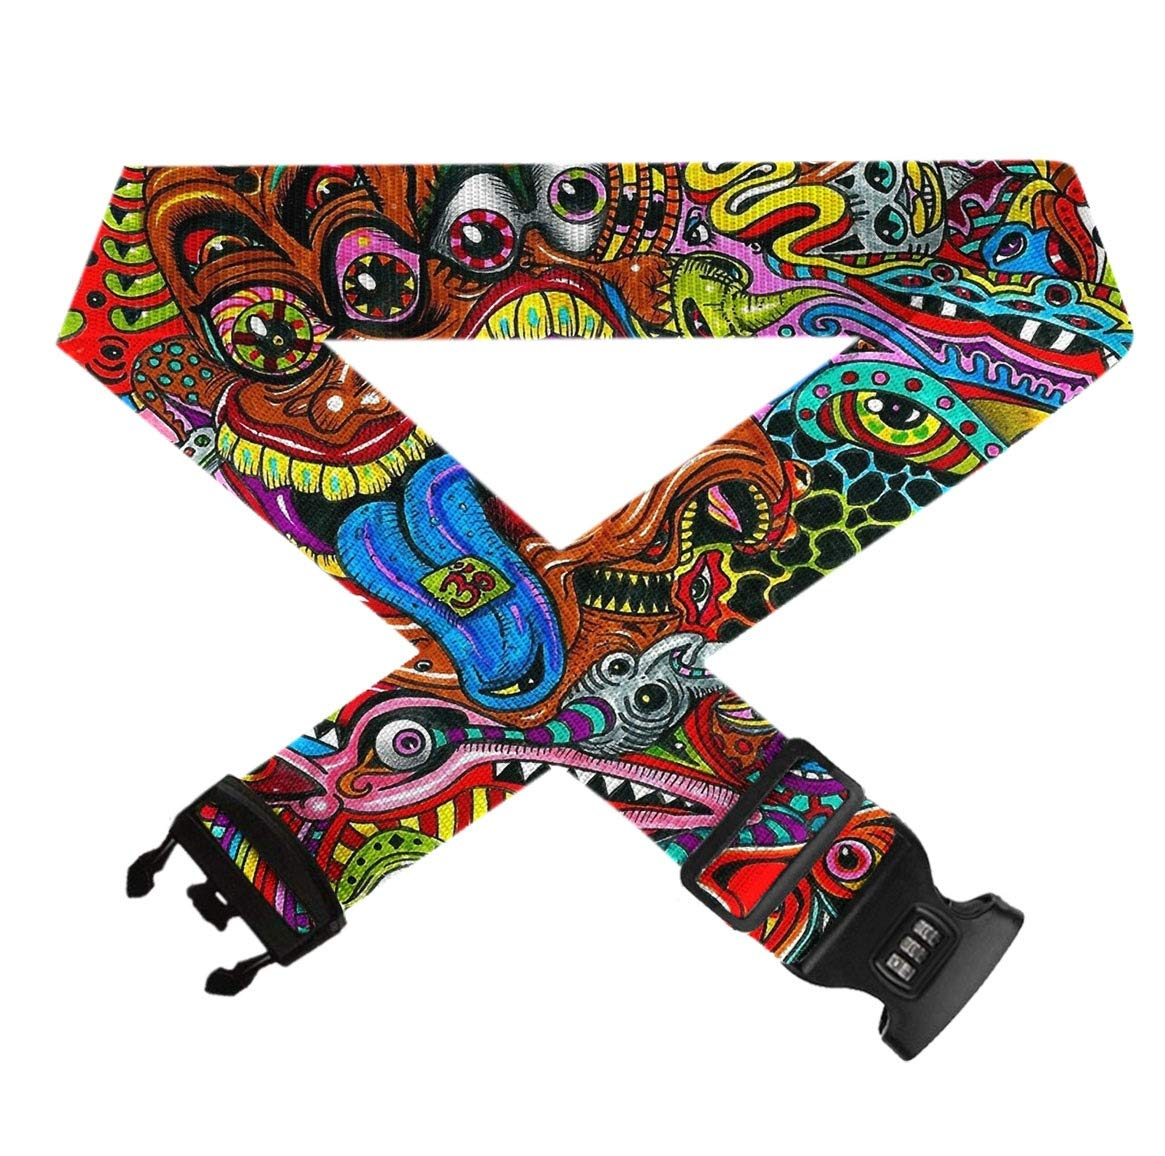 Adjustable Length Suitcase Straps Quick-Release Buckle Luggage Strap Psychedelic Trippy Art Suitcase Security Belt With 3-Dial Lock 41-74 L X 2 W